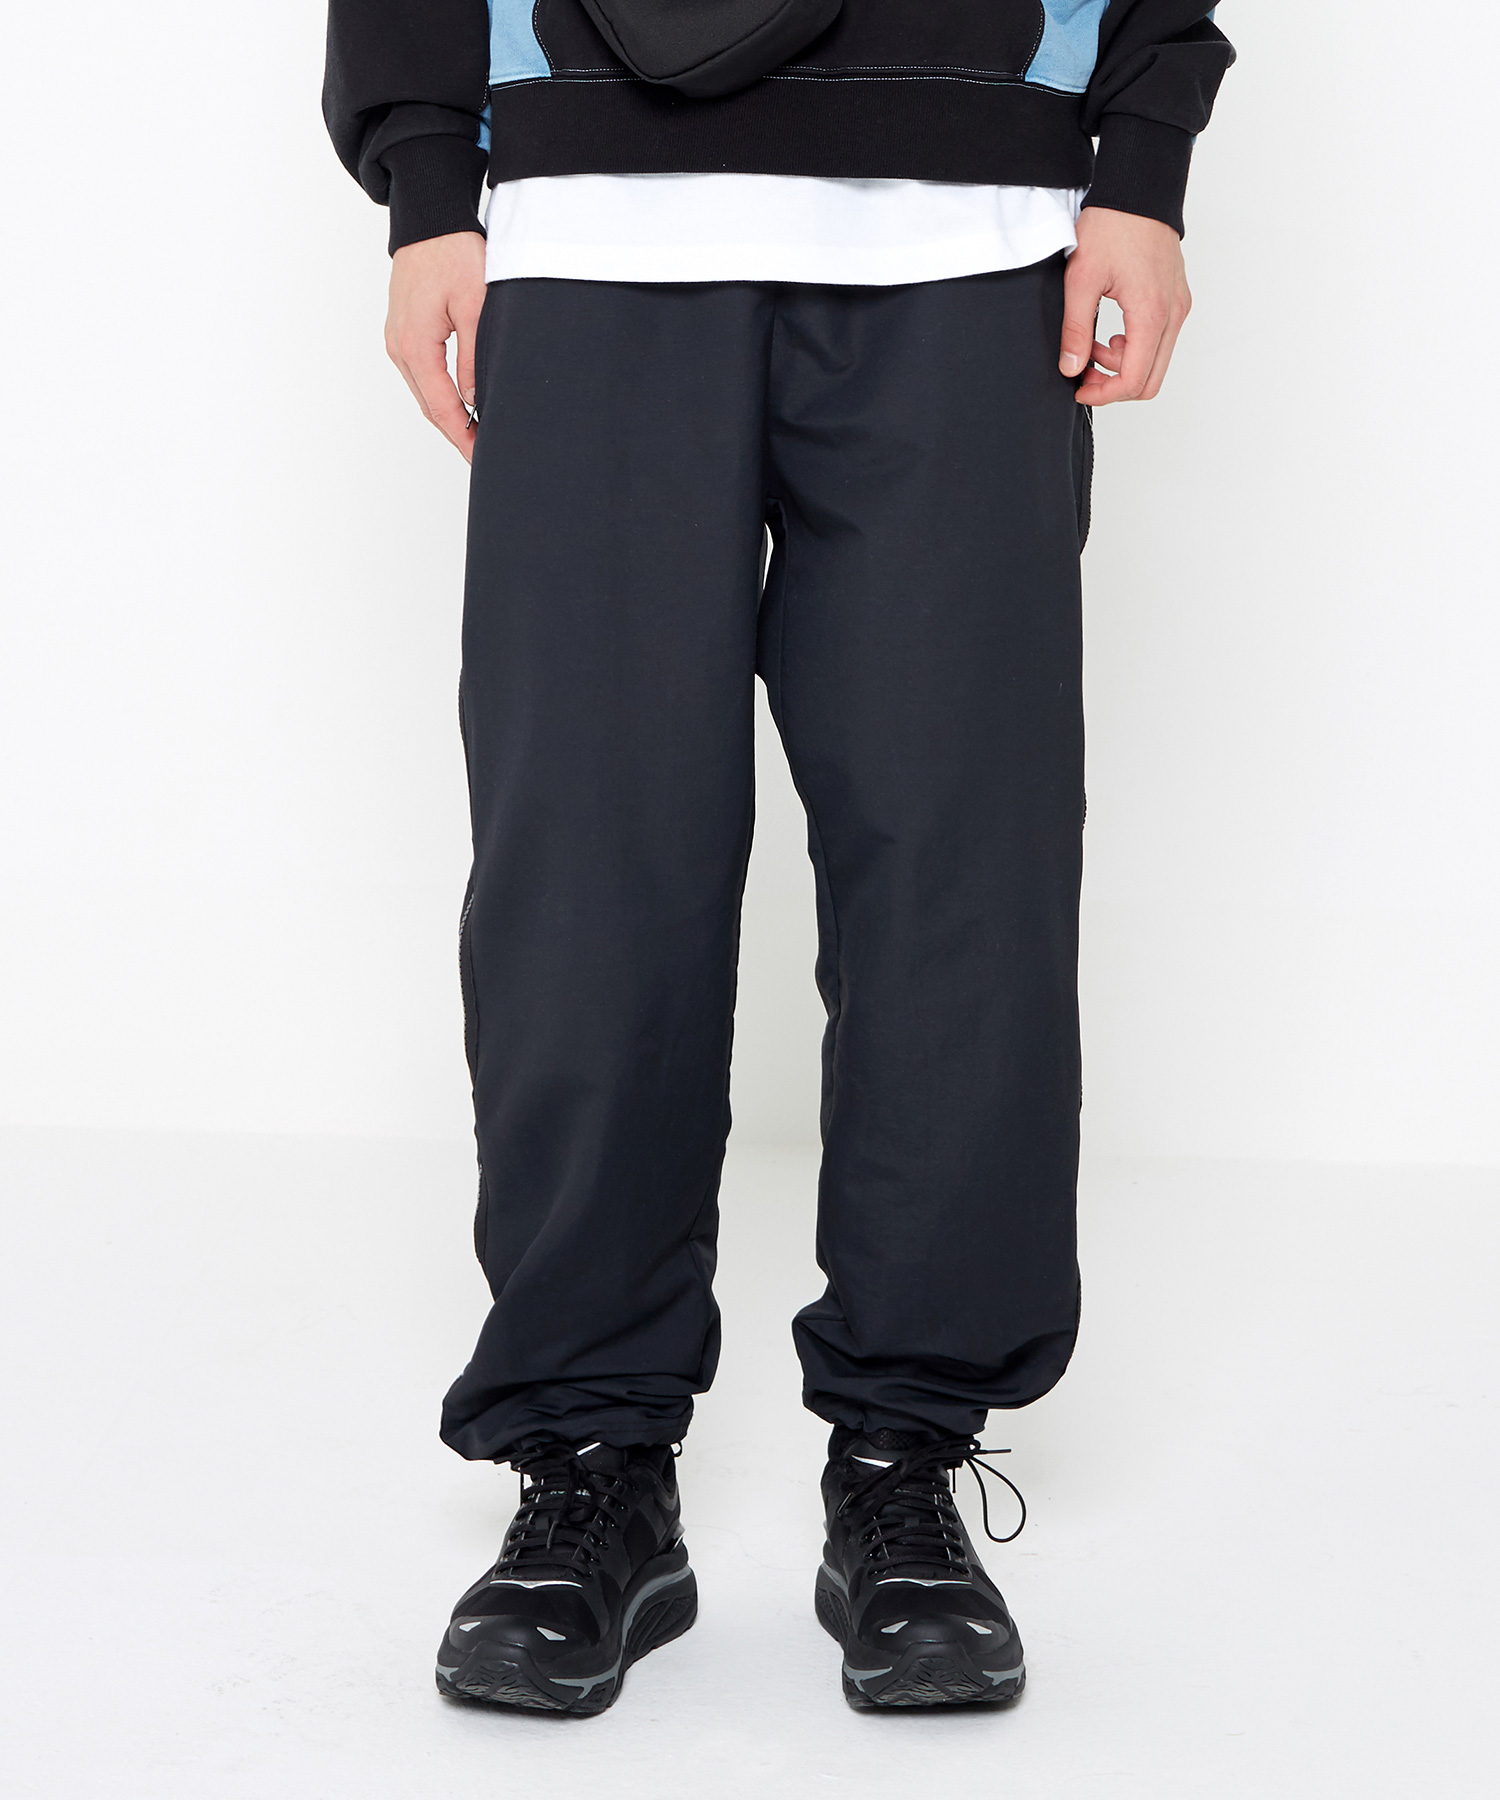 Side Zip Track Pants (Black)